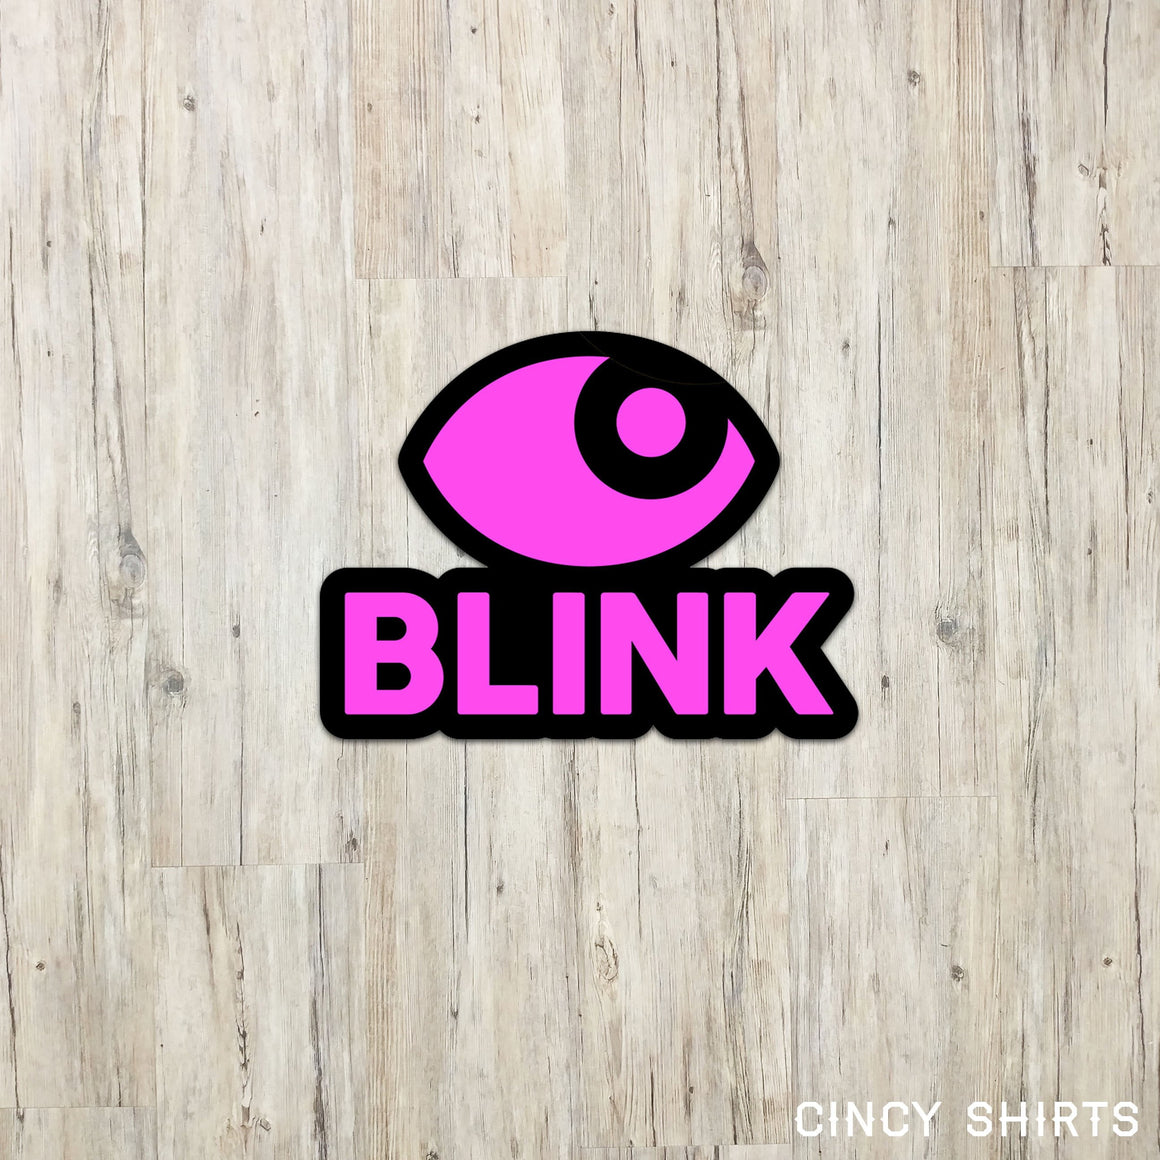 BLINK Sticker | Black Outline T-shirt